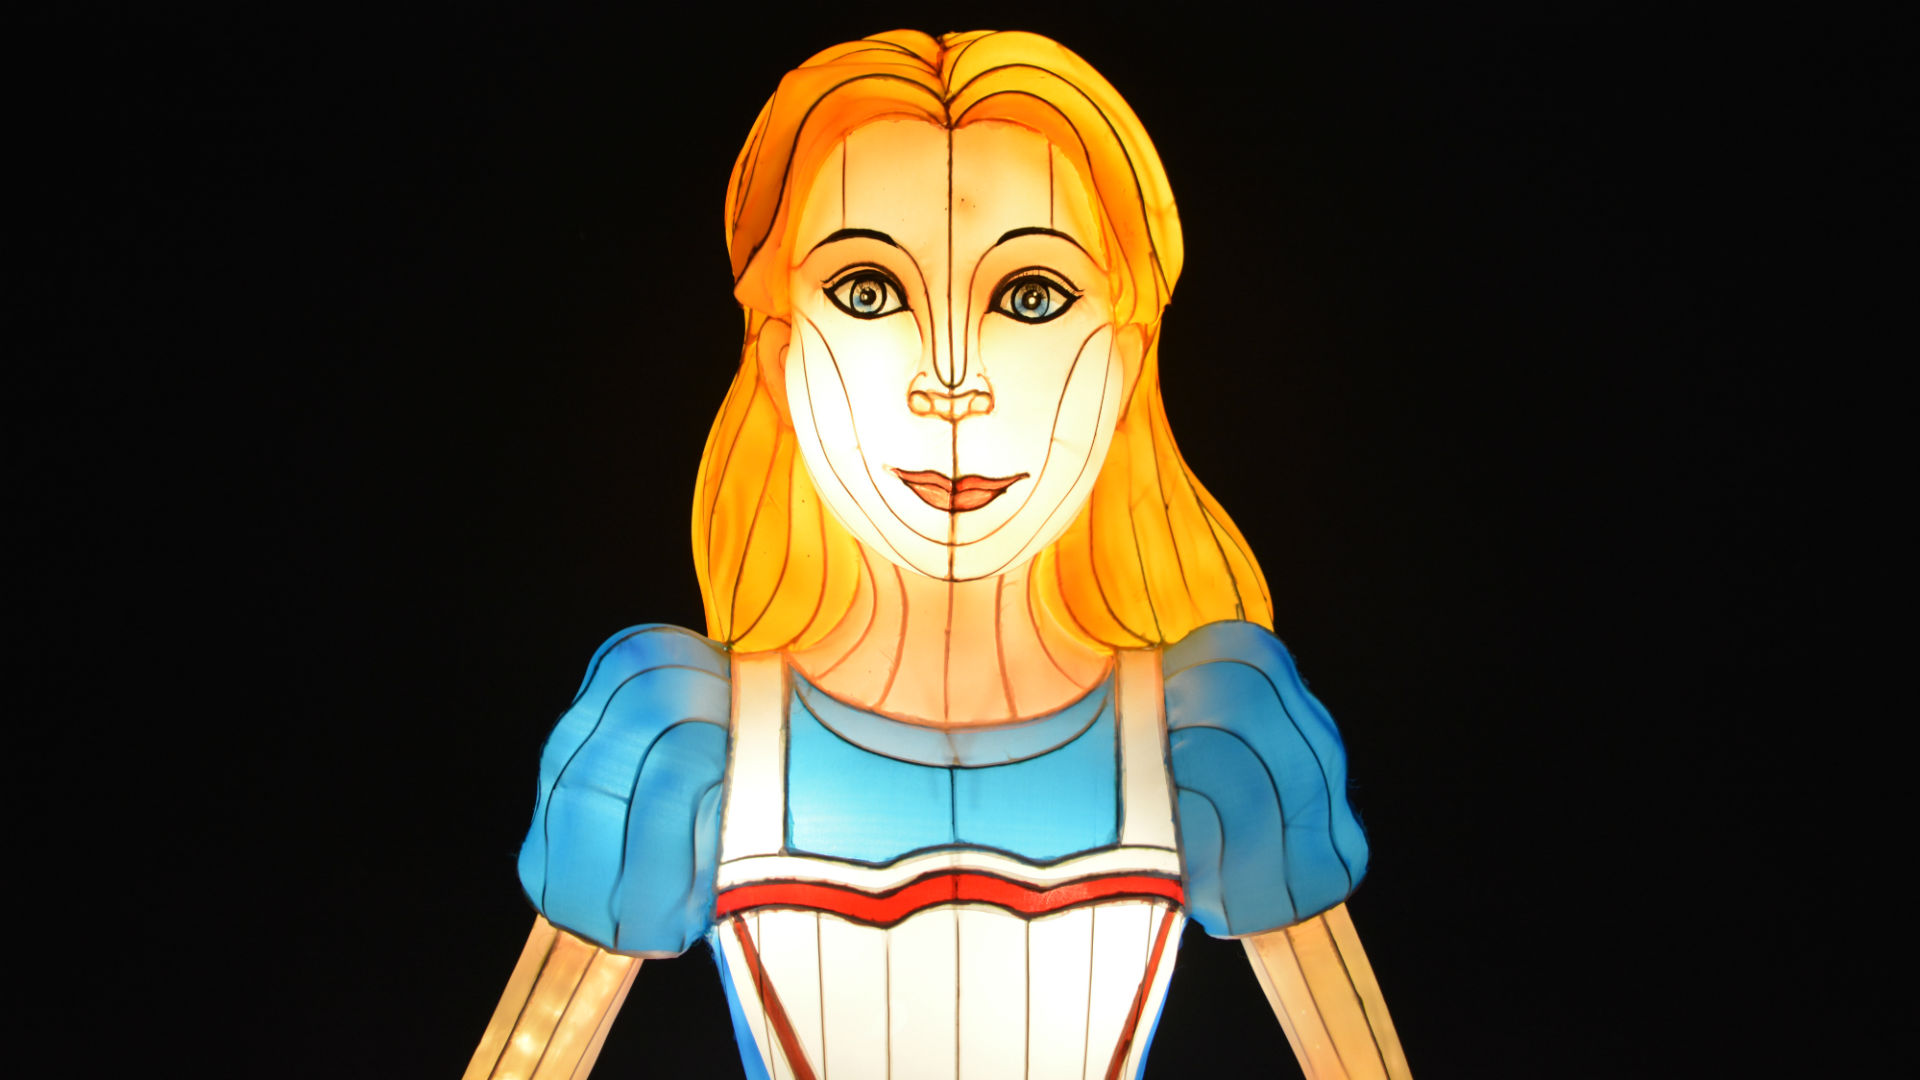 Artistic image of Alice with long blonde hair, blue dress and white apron